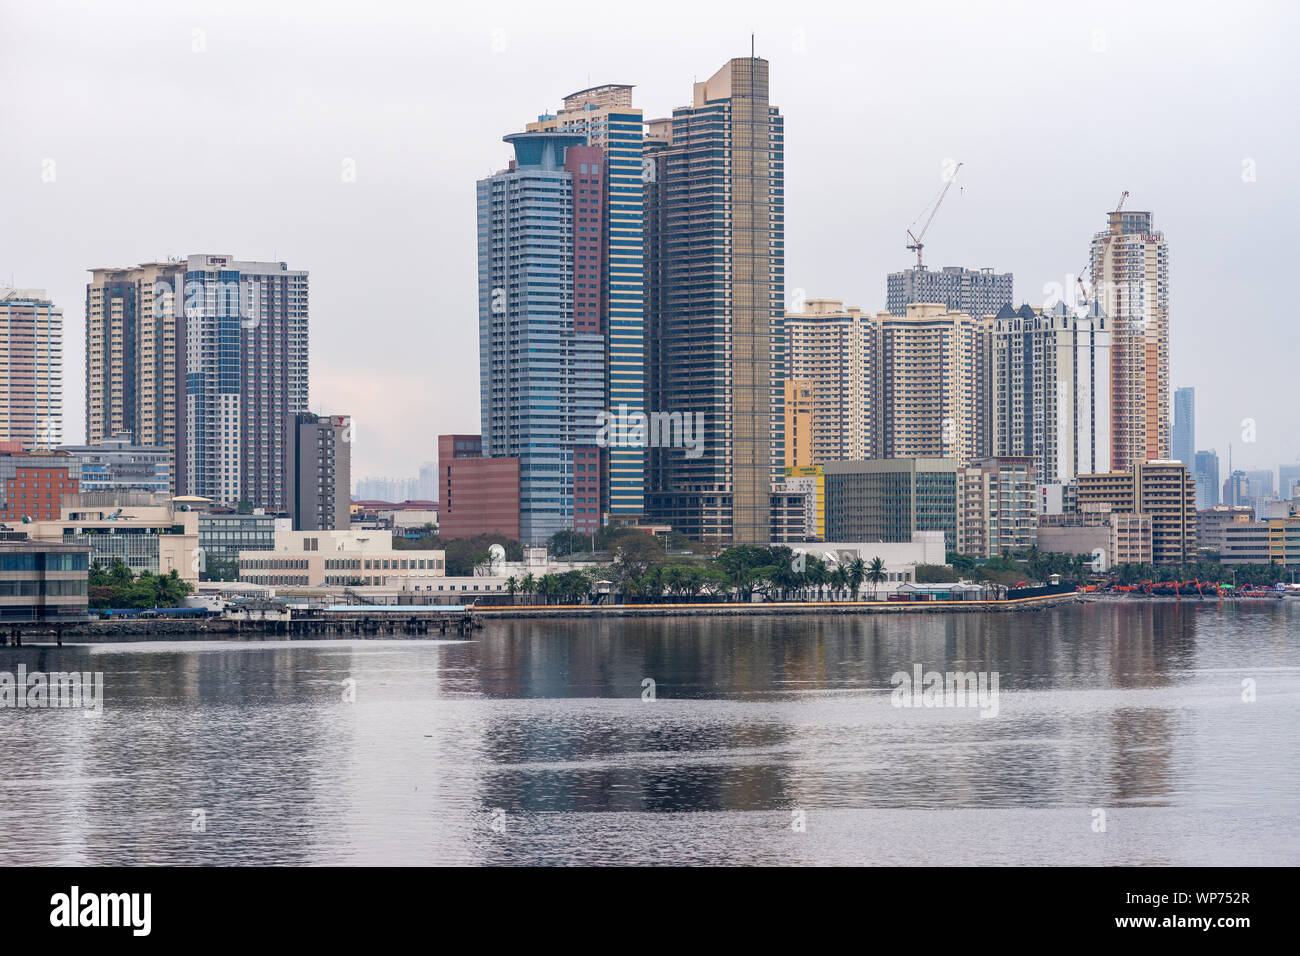 Manila, Philippines - March 5, 2019: South Harbor area early morning. Skyline with tall buildings, some under construction form horizon band between s Stock Photo